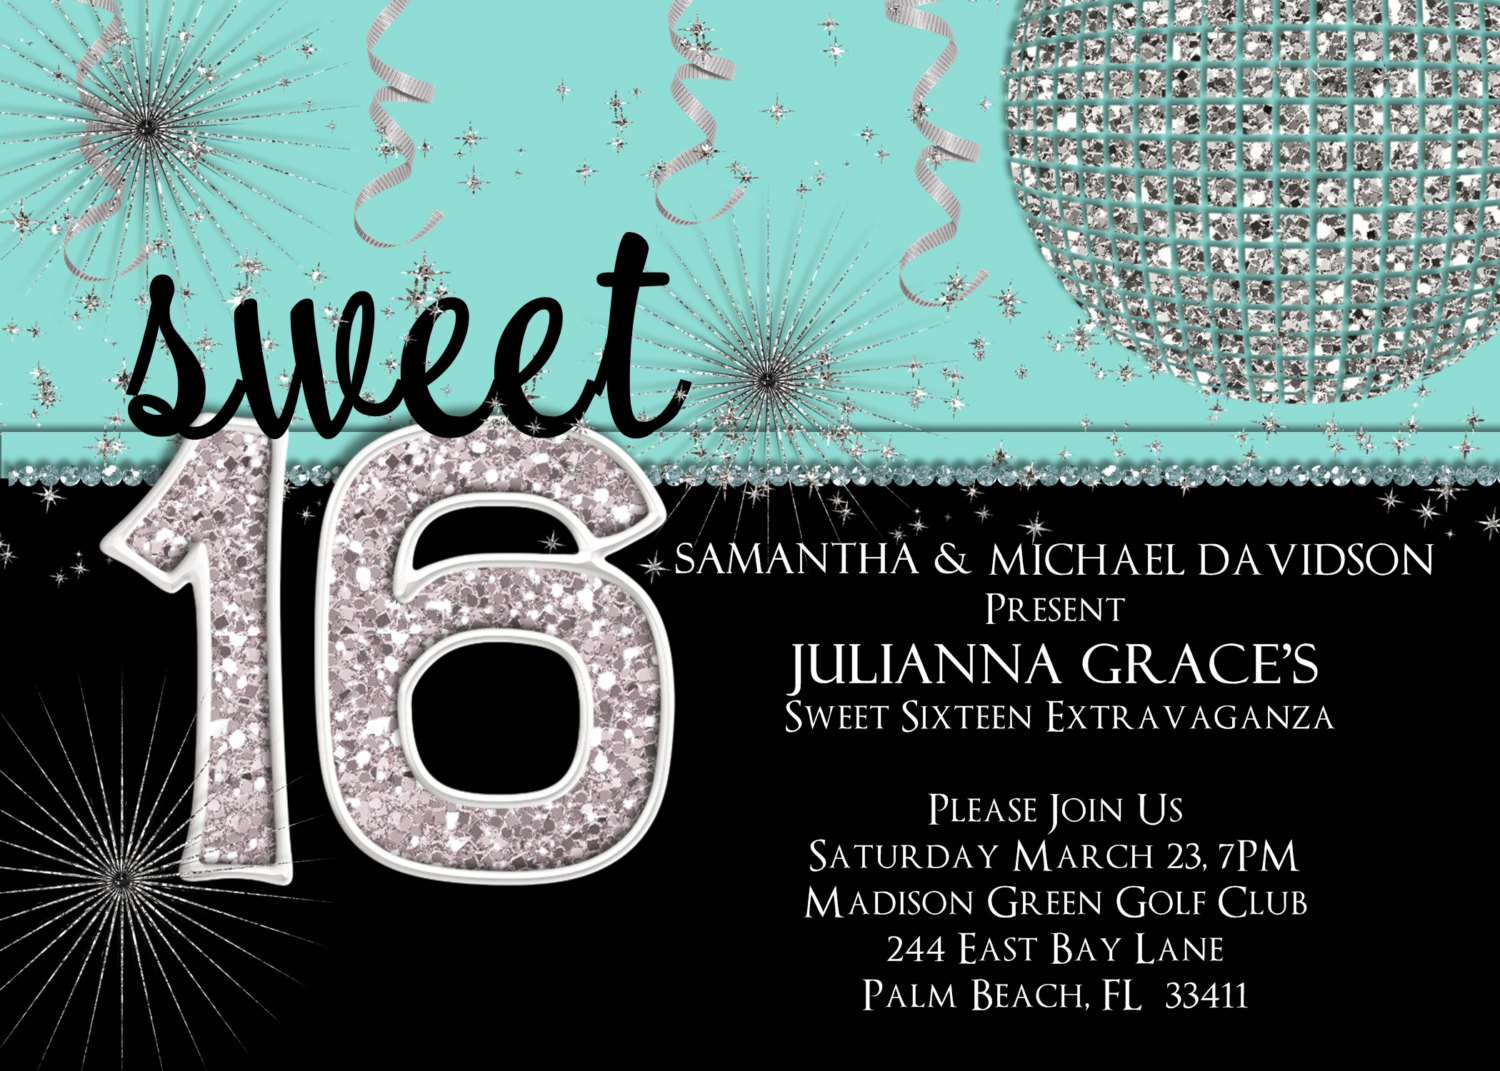 free printable 16th birthday party invitation templates ; invitation-templates-16th-birthday-party-slikuwlo